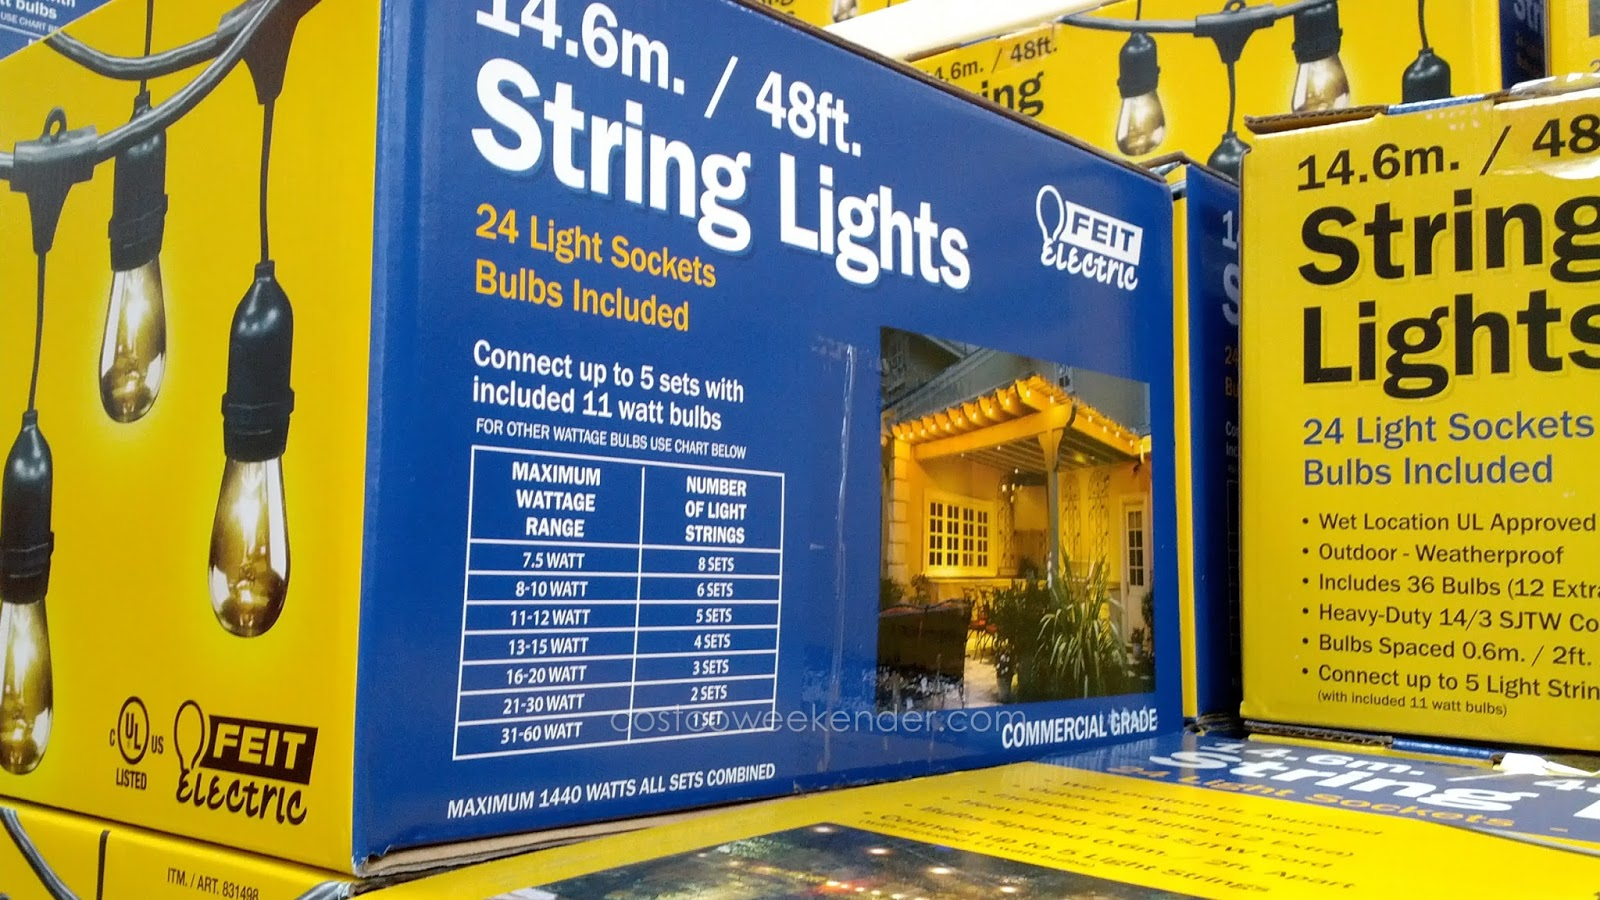 Feit 48 Ft Outdoor String Lights To Light Up Your Area